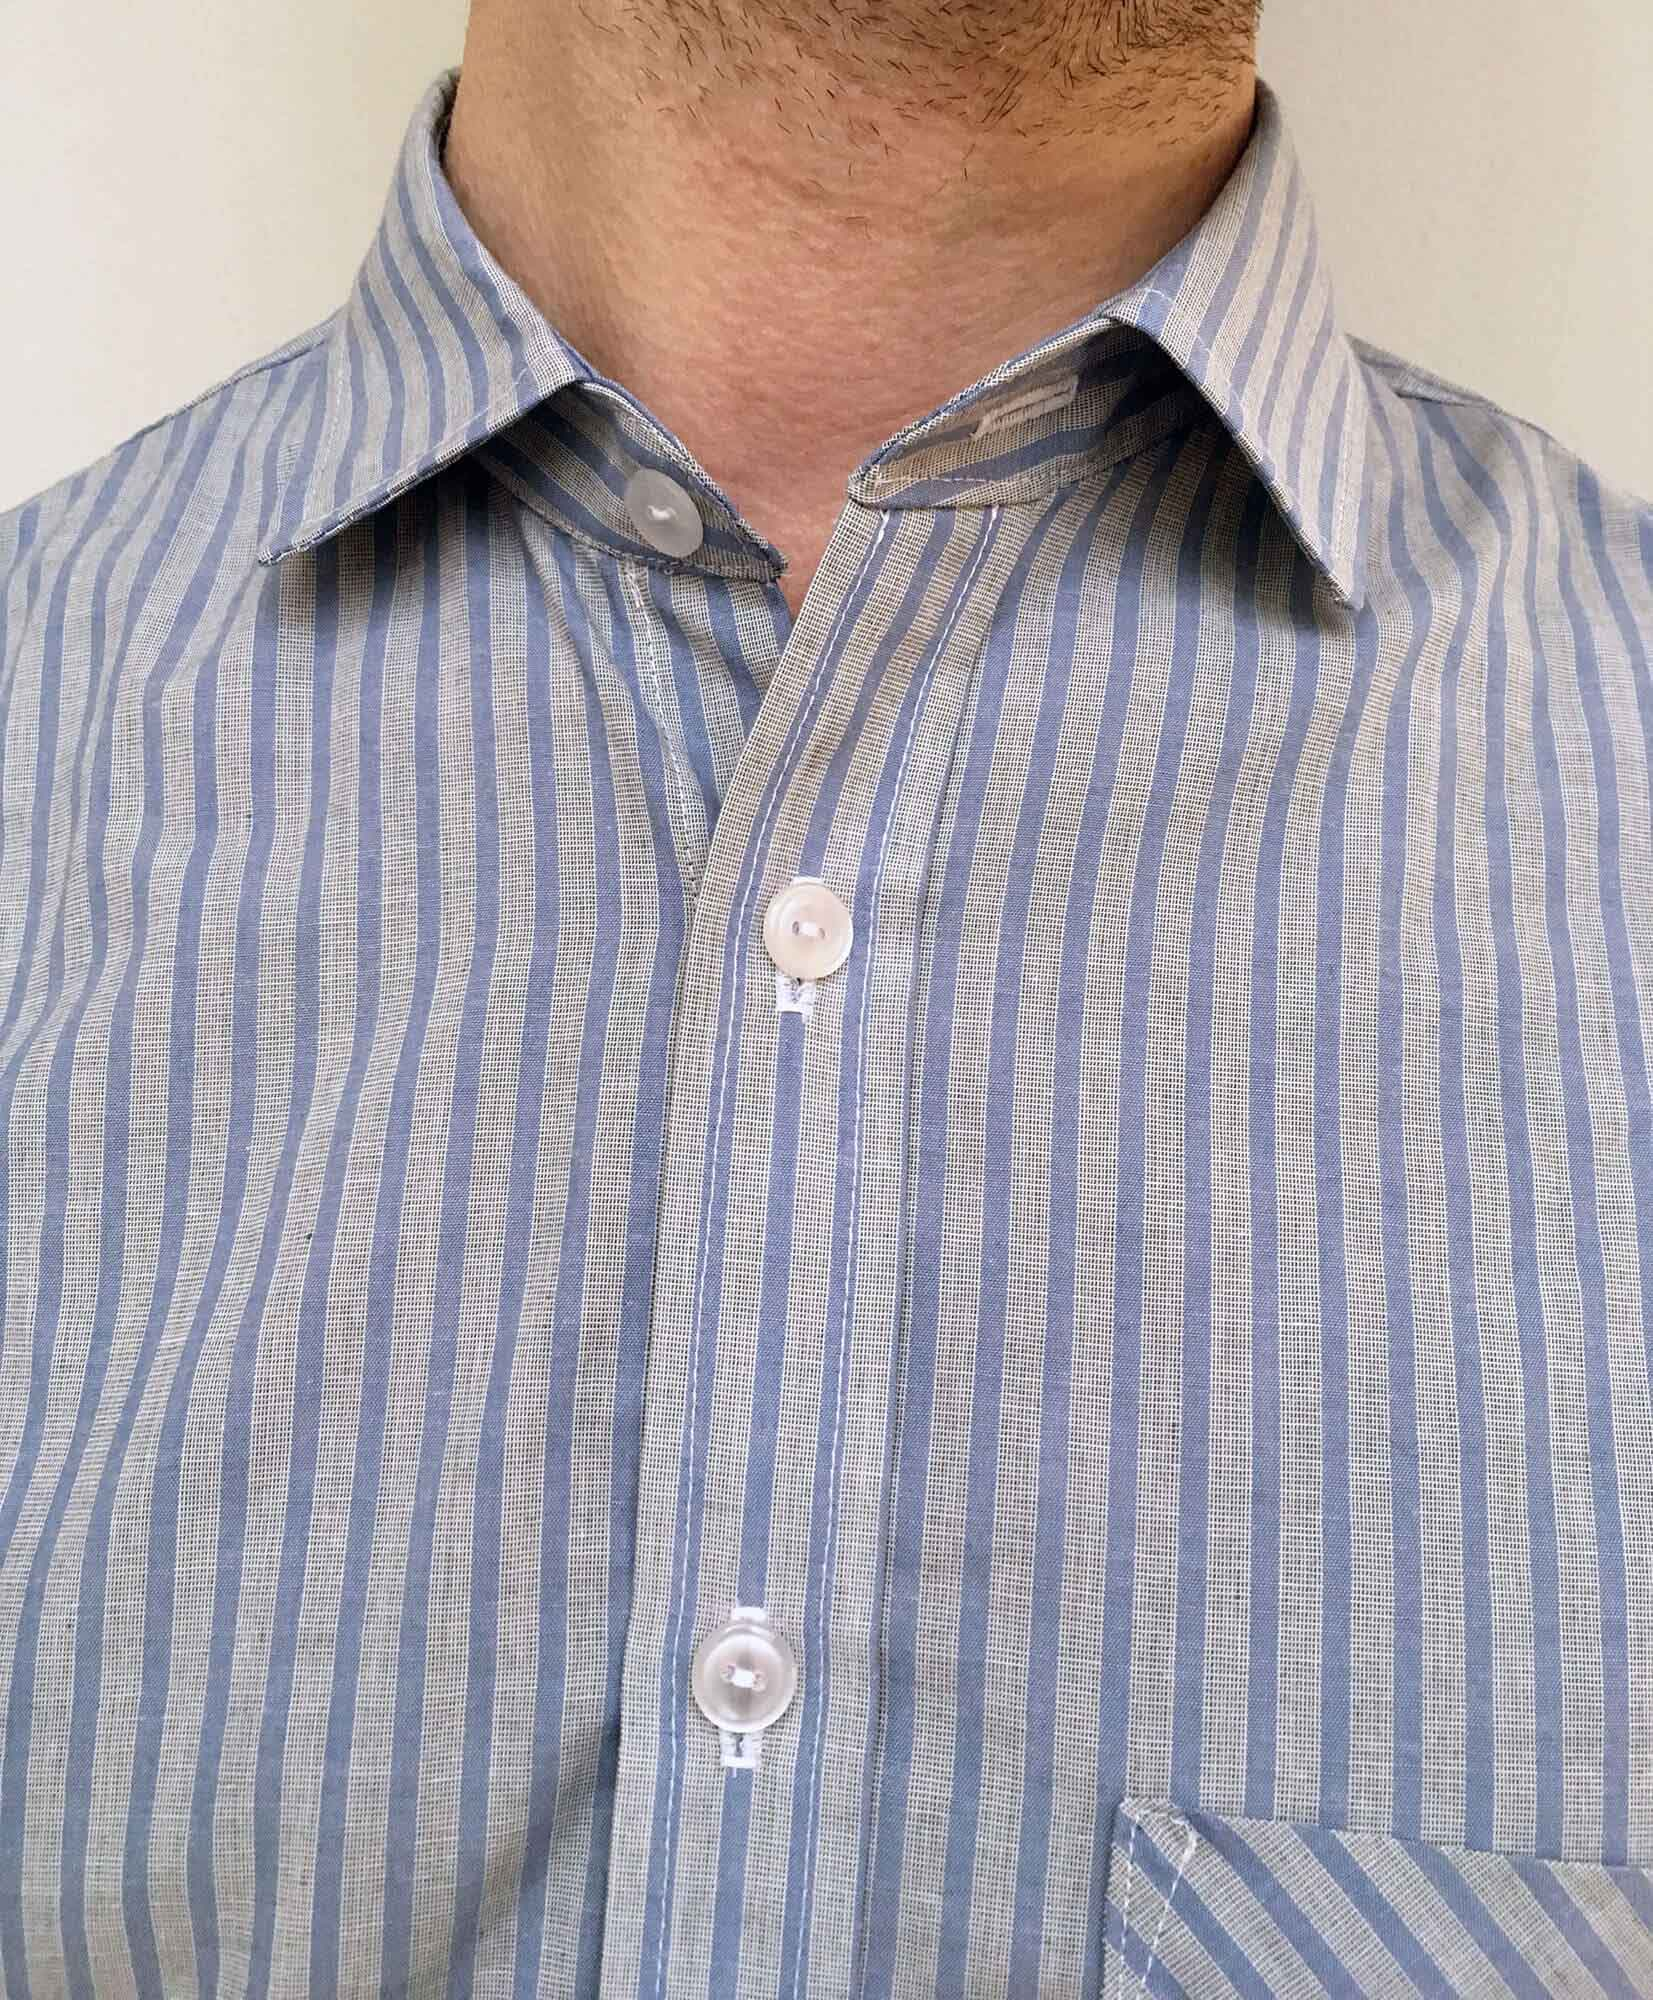 16f933711d5 I followed the Fairfield sew-along on the Thread Theory blog, and without  needing to do sleeve plackets or cuffs, I got most of the shirt done in an  ...